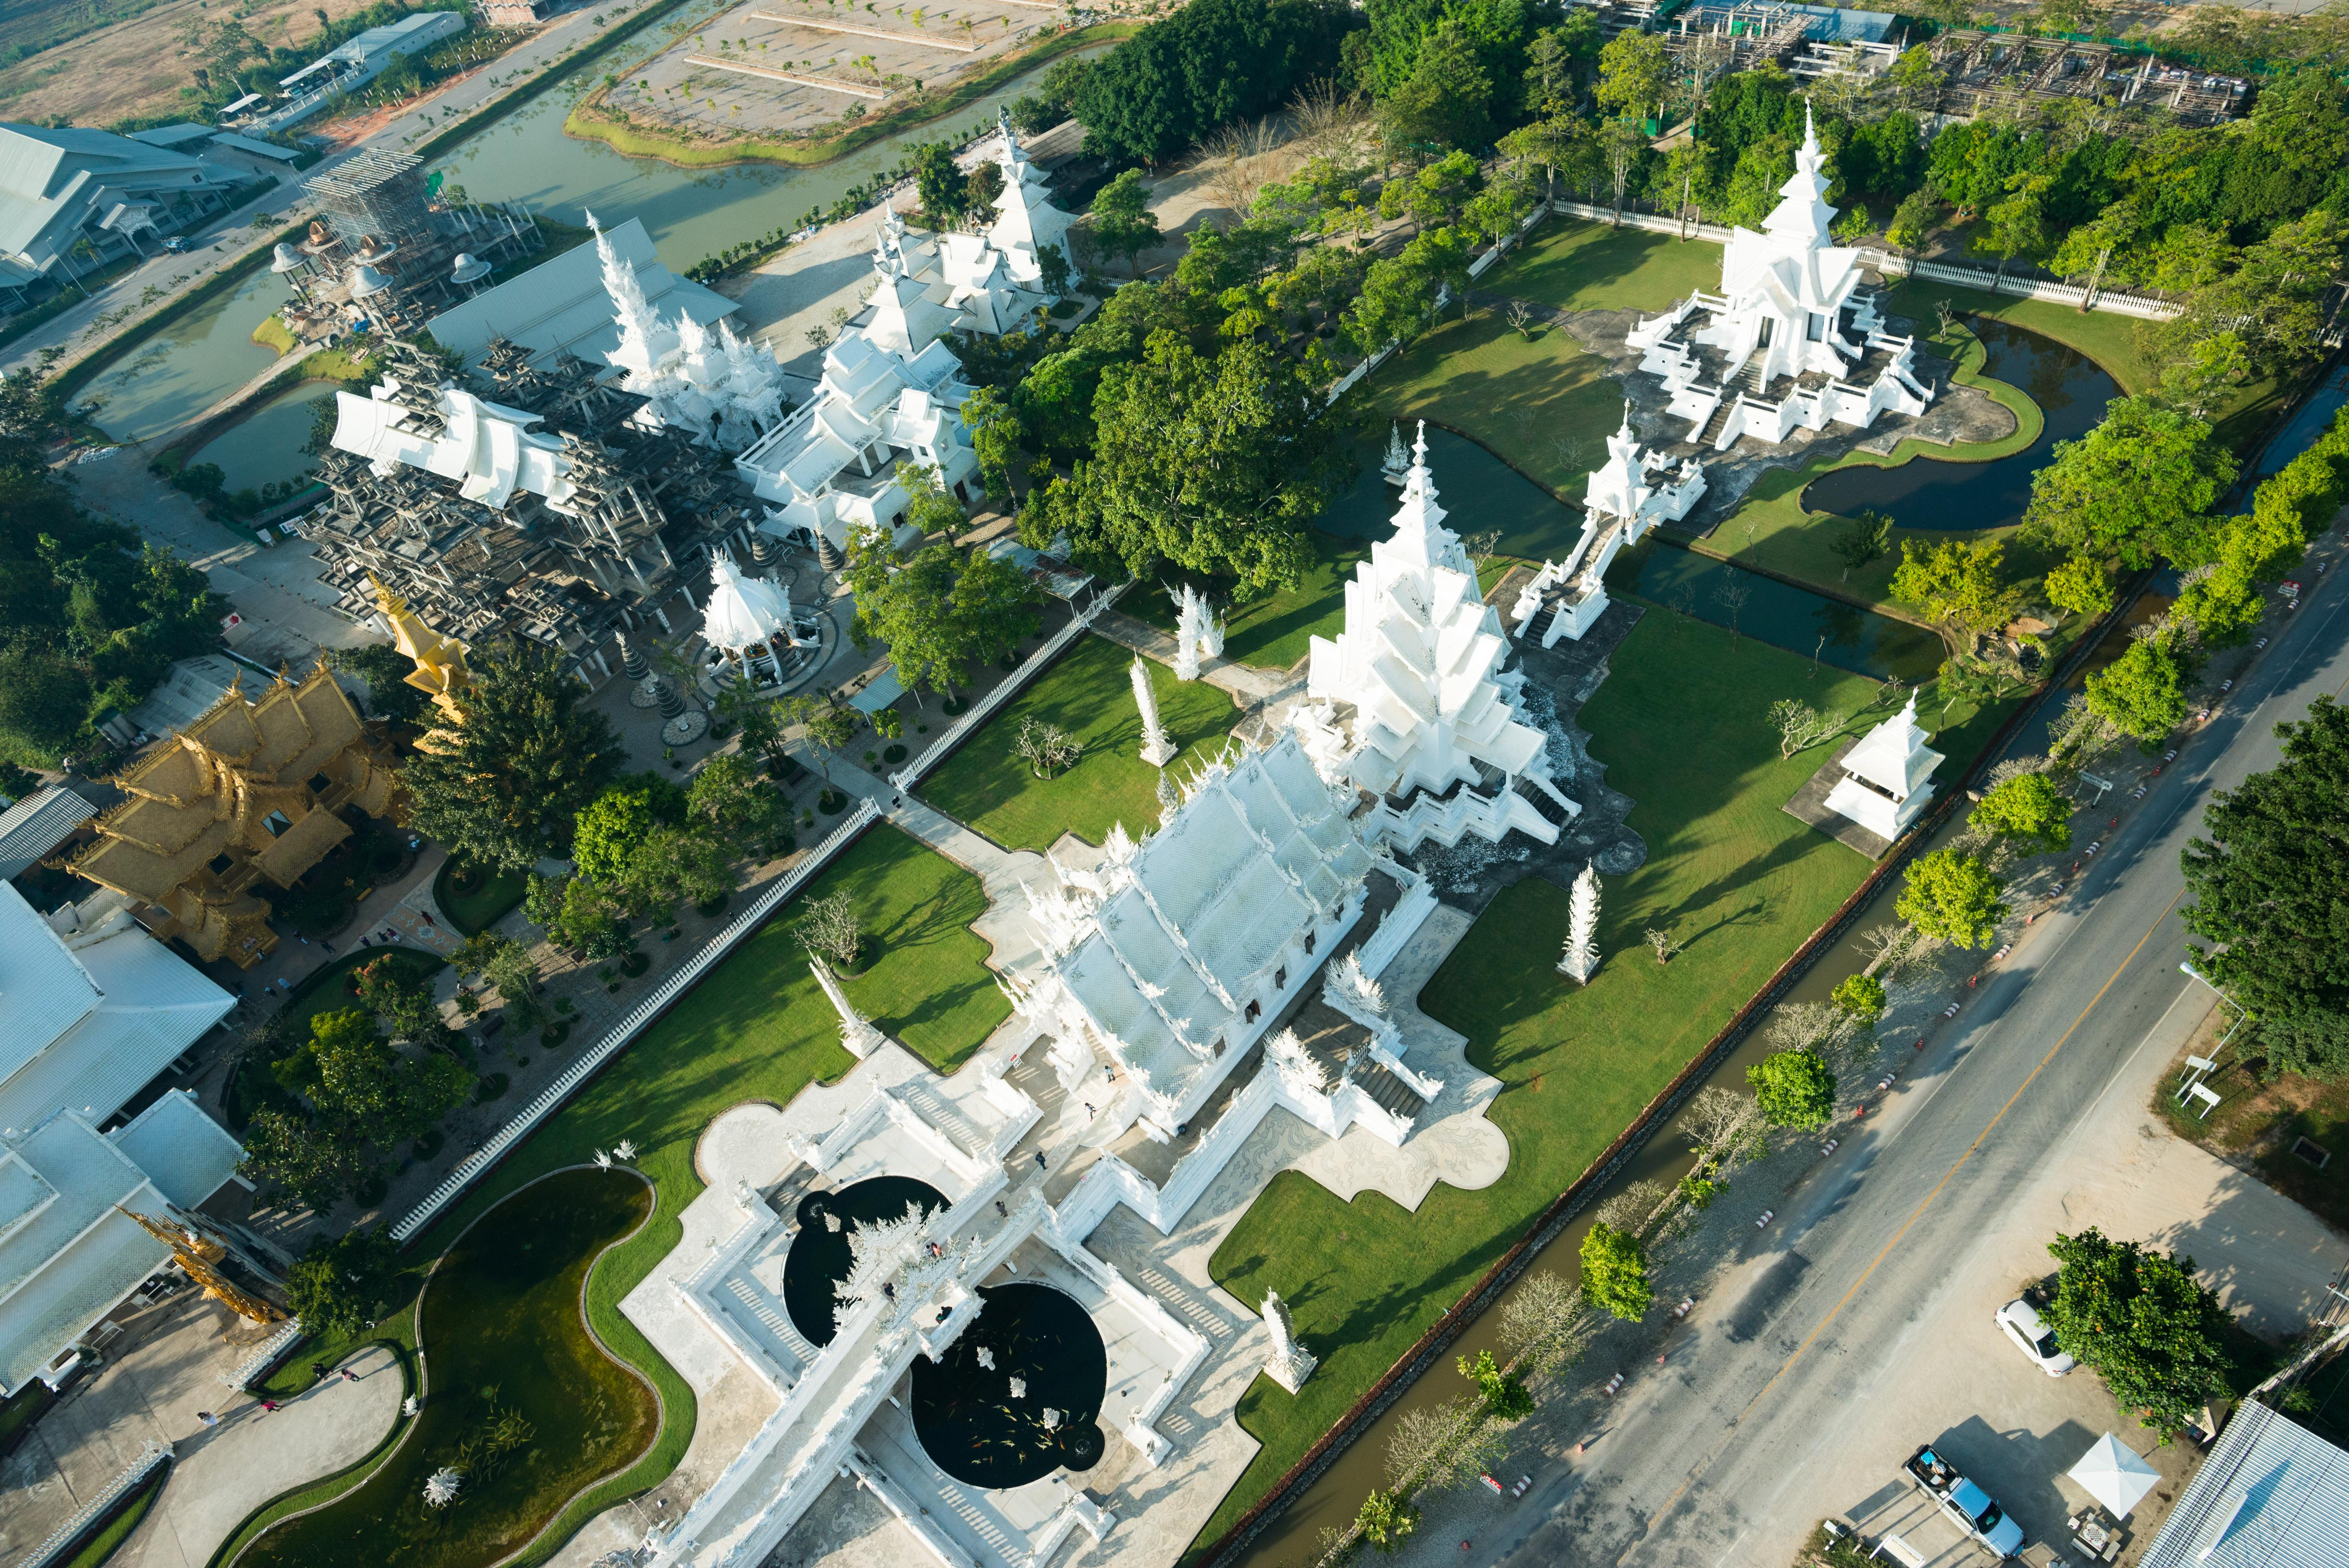 WAT RONG KHUN. The White Temple is a Buddhist temple in the Chiang Rai province. Photo courtesy of the Tourism Authority of Thailand